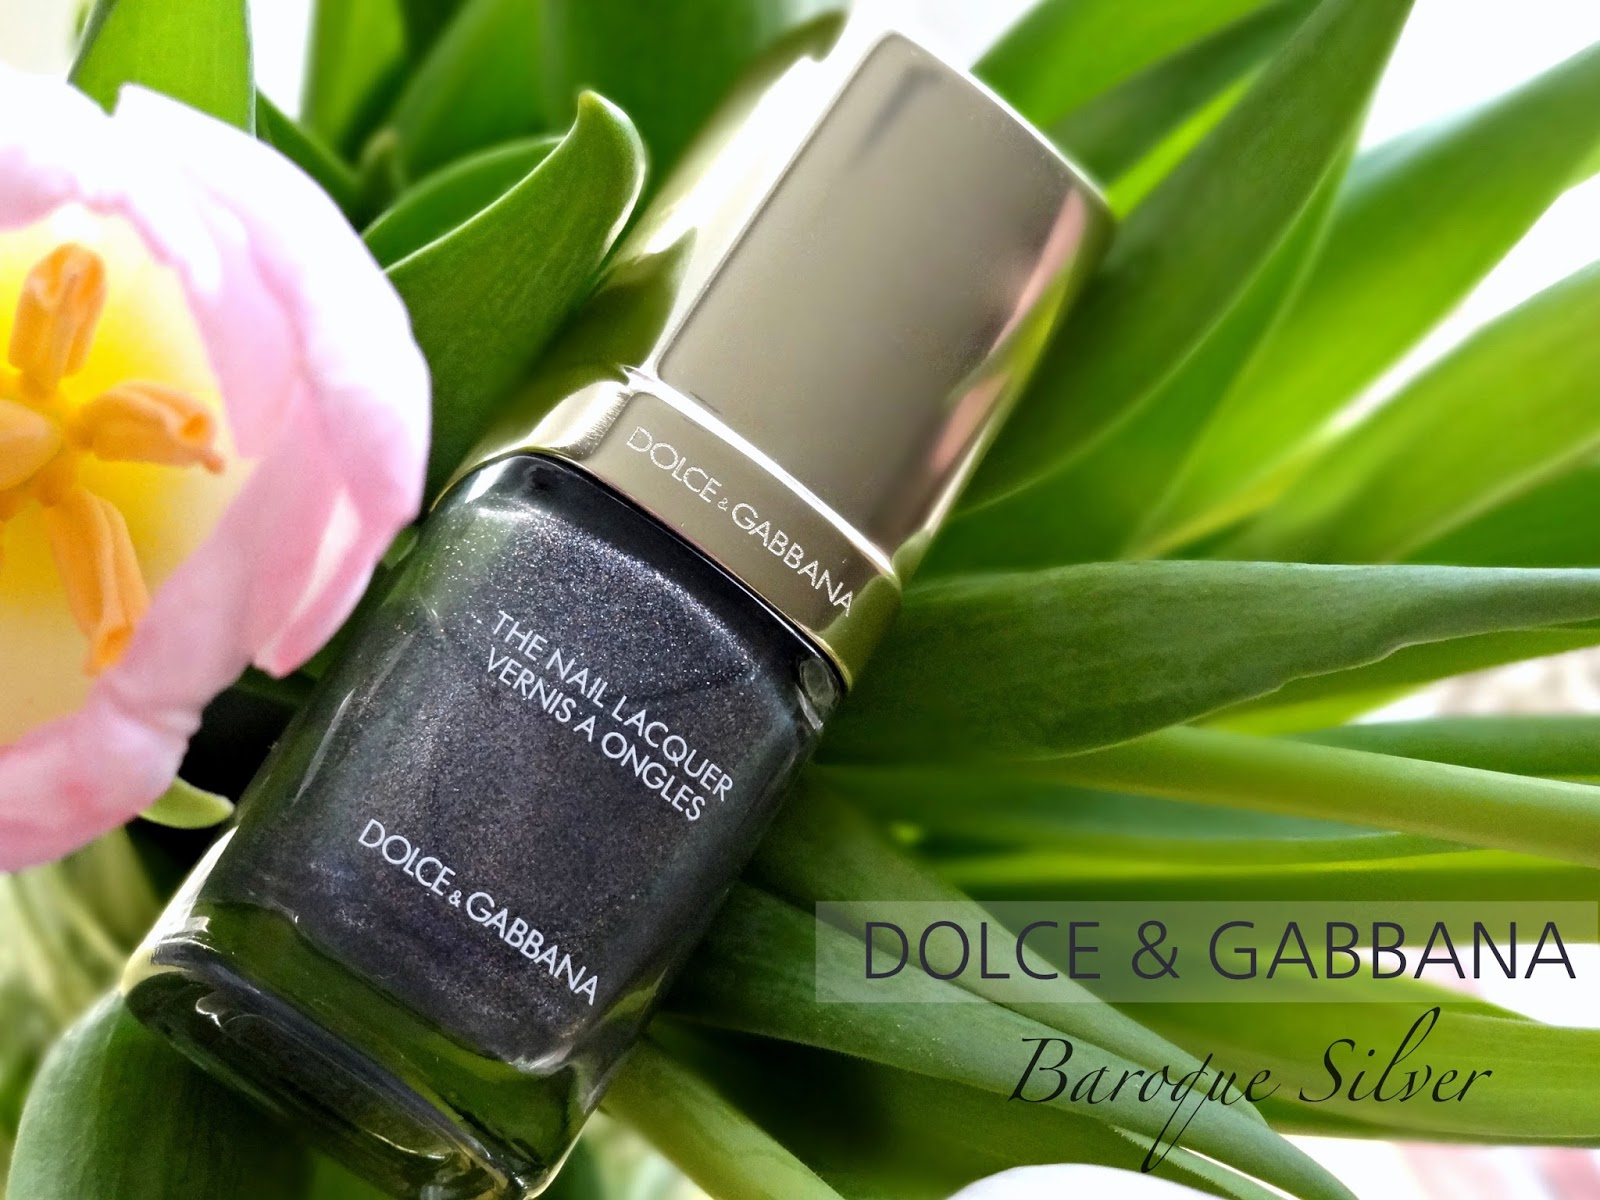 Dolce & Gabbana Nail Lacquer in 830 Baroque Silver